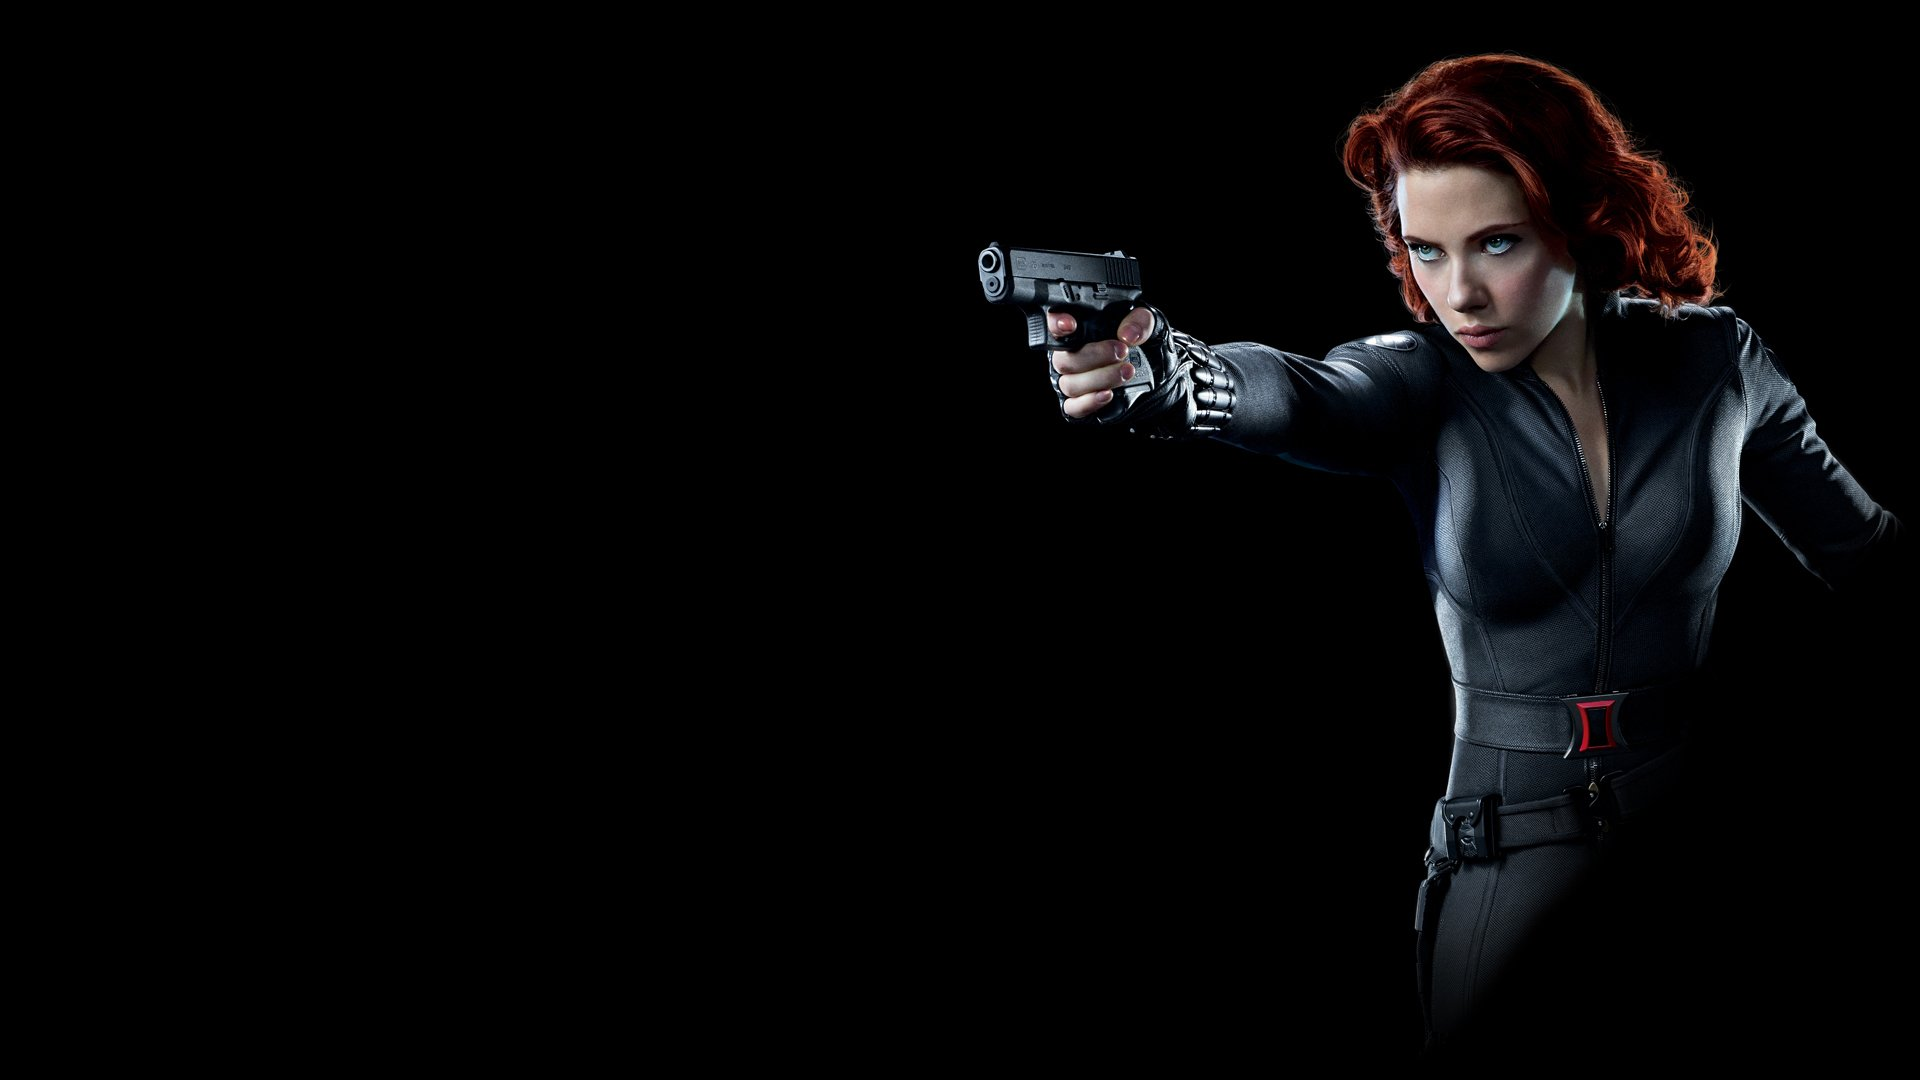 The avengers hd wallpaper background image 1920x1080 - Scarlett johansson avengers hd wallpapers ...